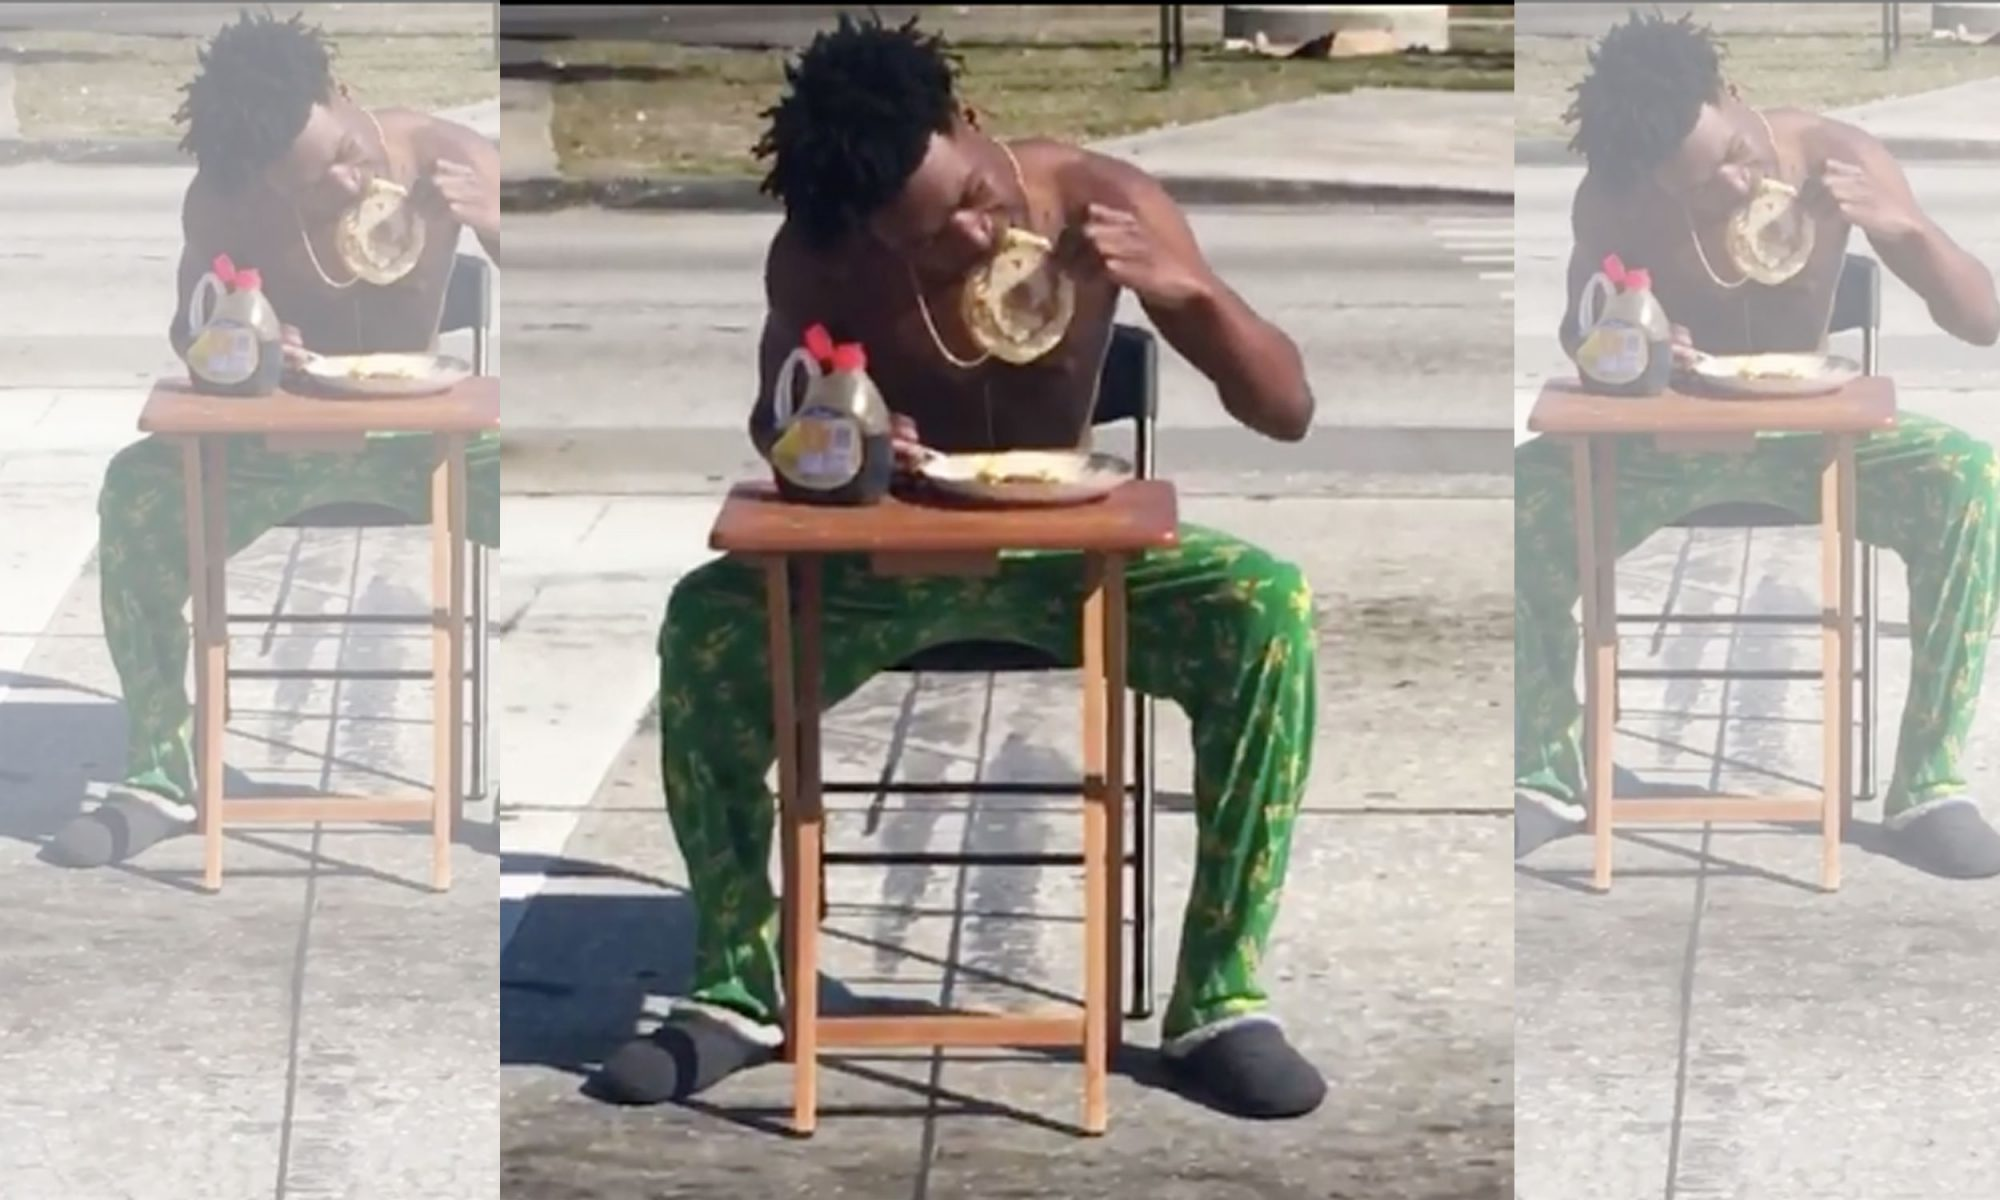 EC: Meet the Florida Man Facing Charges for Eating Pancakes in the Street